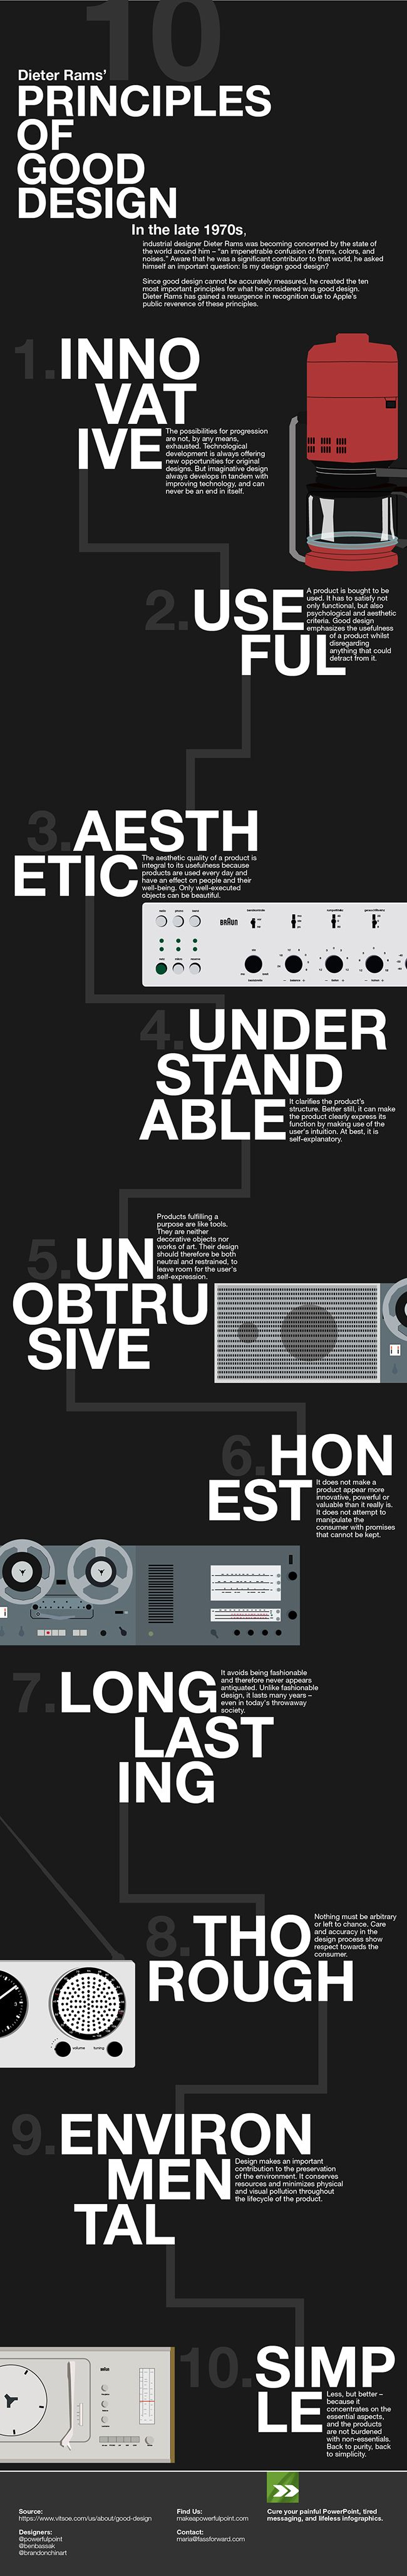 Poster design principles - 10 Principles Of Good Design By Dieter Rams Infographic